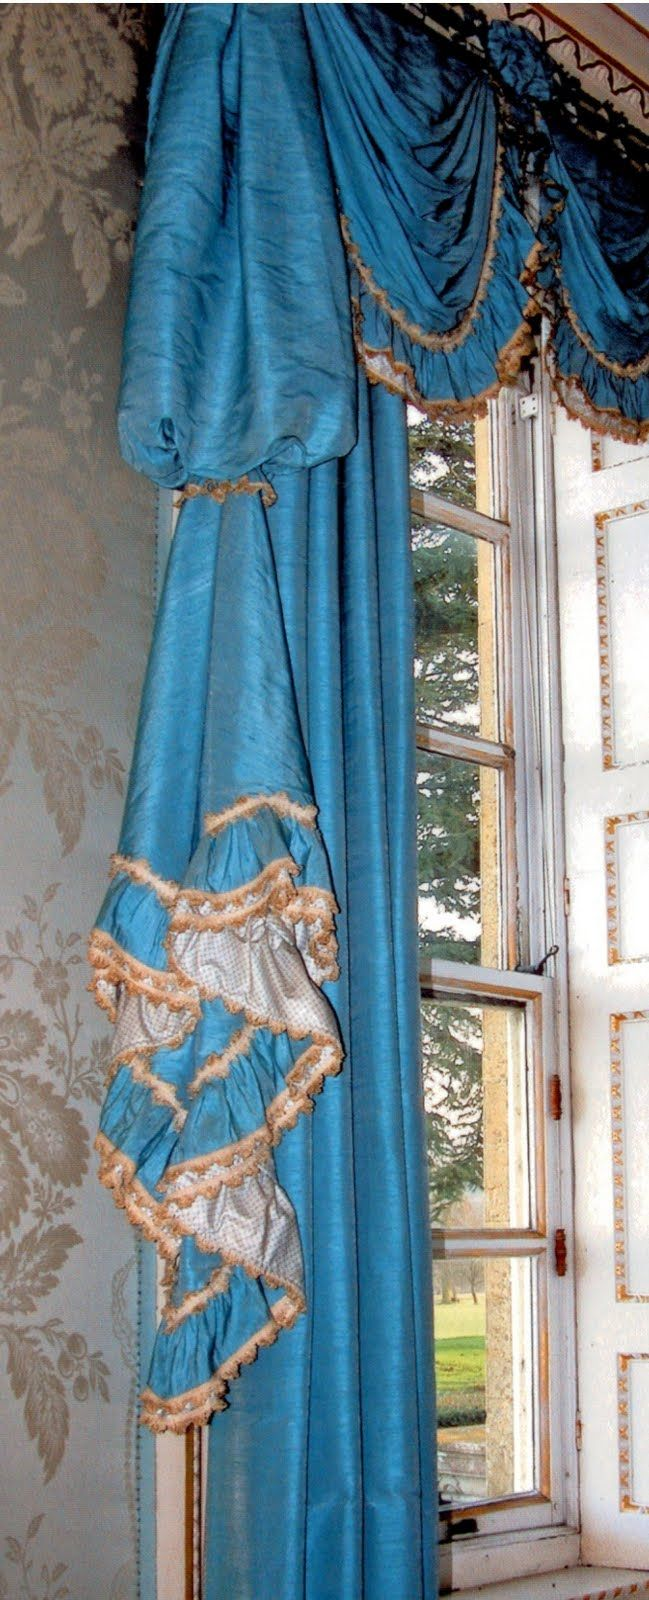 Drapery Treatment at Corbury by the late great decorator John Fowler